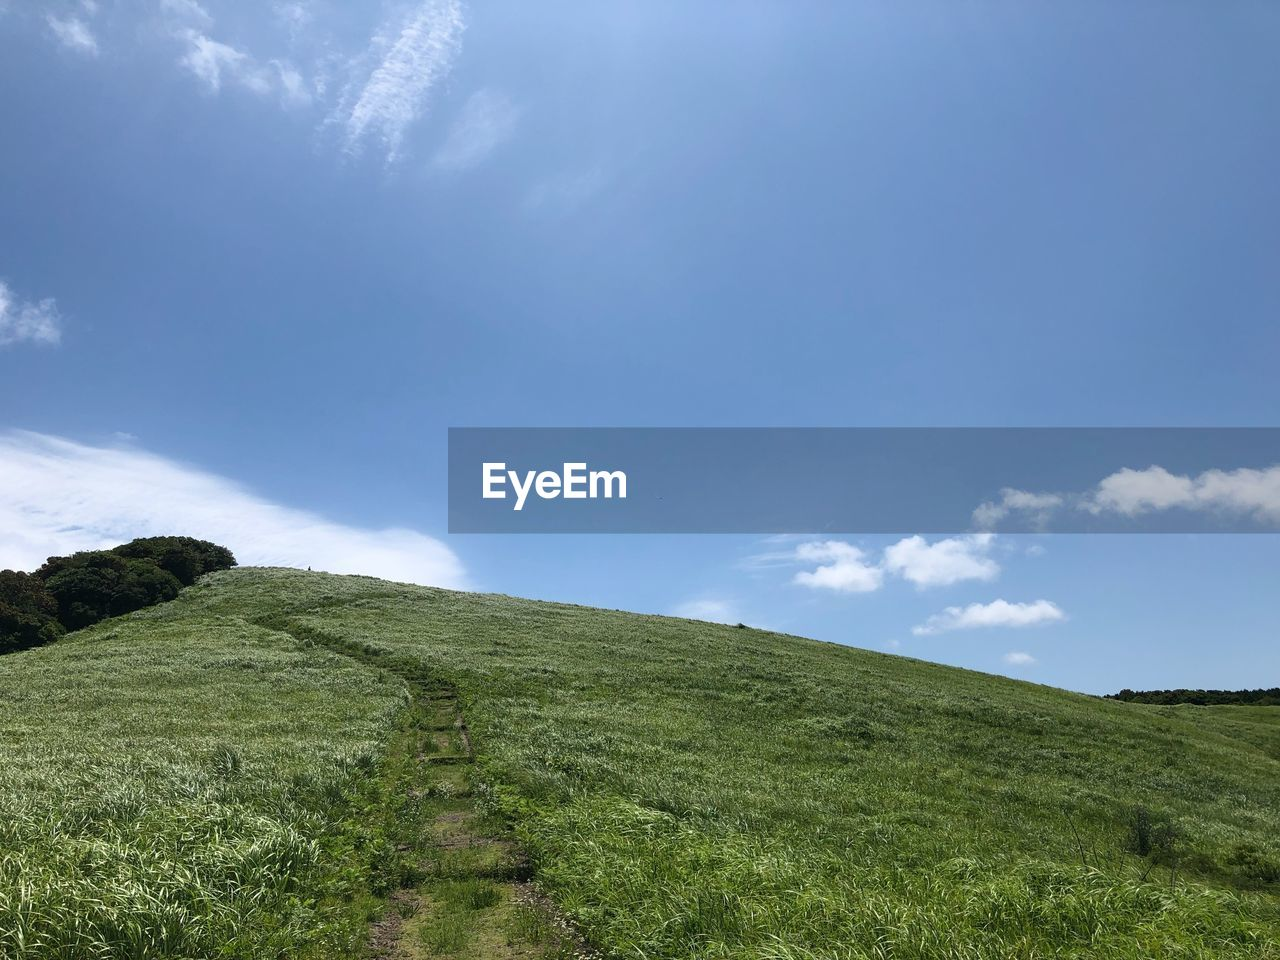 sky, grass, plant, landscape, cloud - sky, green color, tranquility, tranquil scene, beauty in nature, scenics - nature, environment, land, field, no people, non-urban scene, day, nature, hill, growth, outdoors, trail